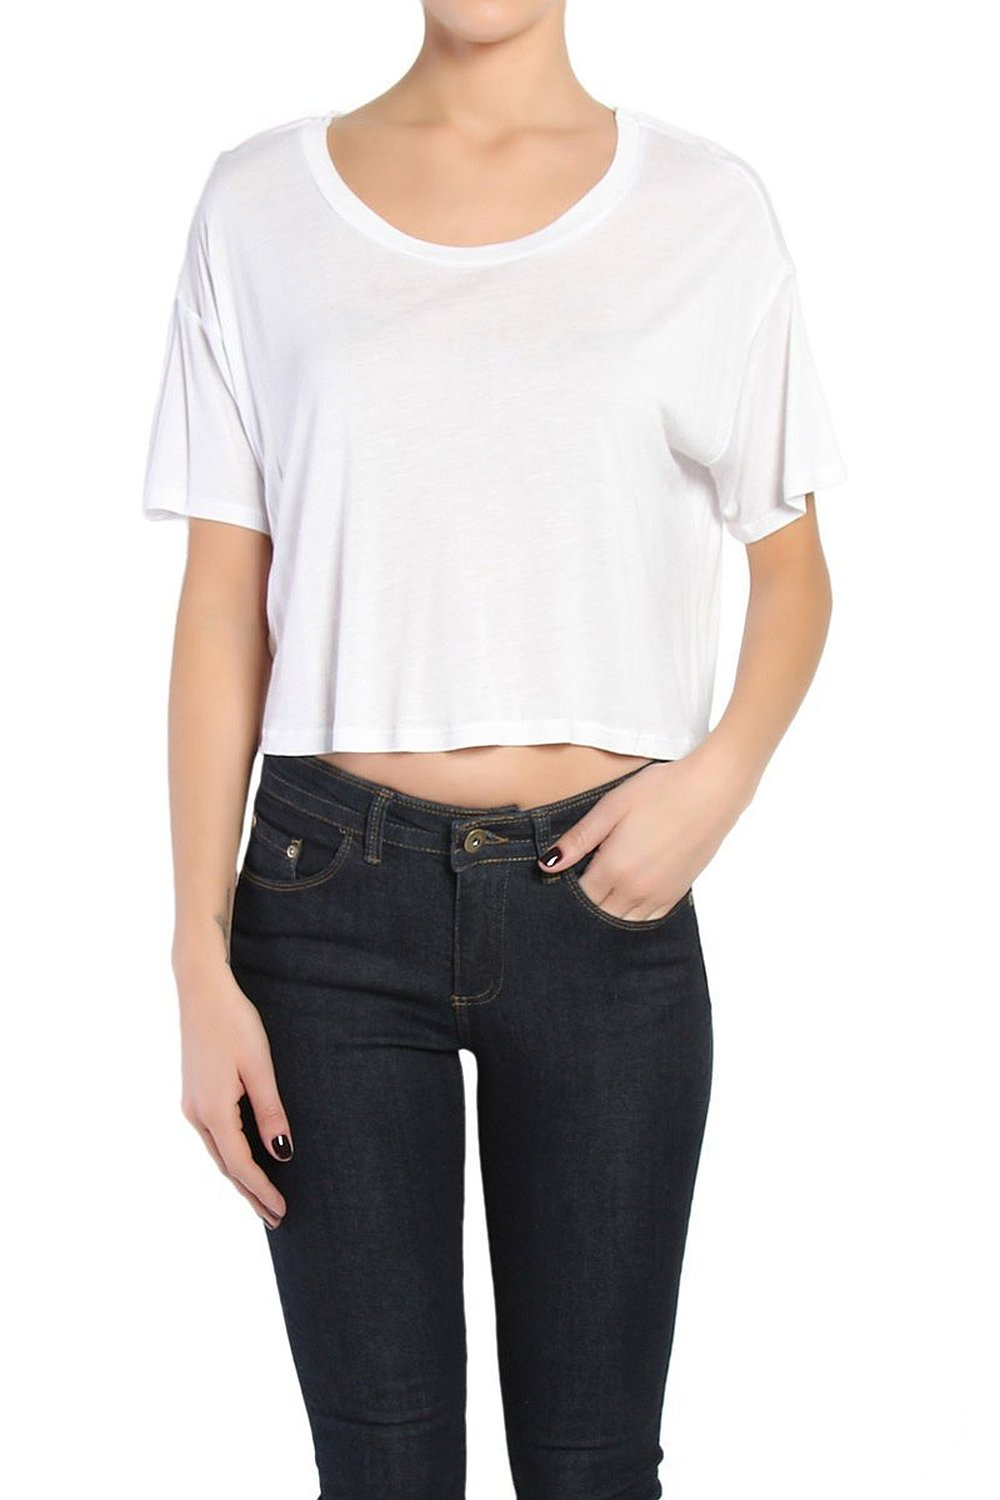 a68612b366 Themogan Women S Boxy Slouchy Short Sleeve Loose Crop Top